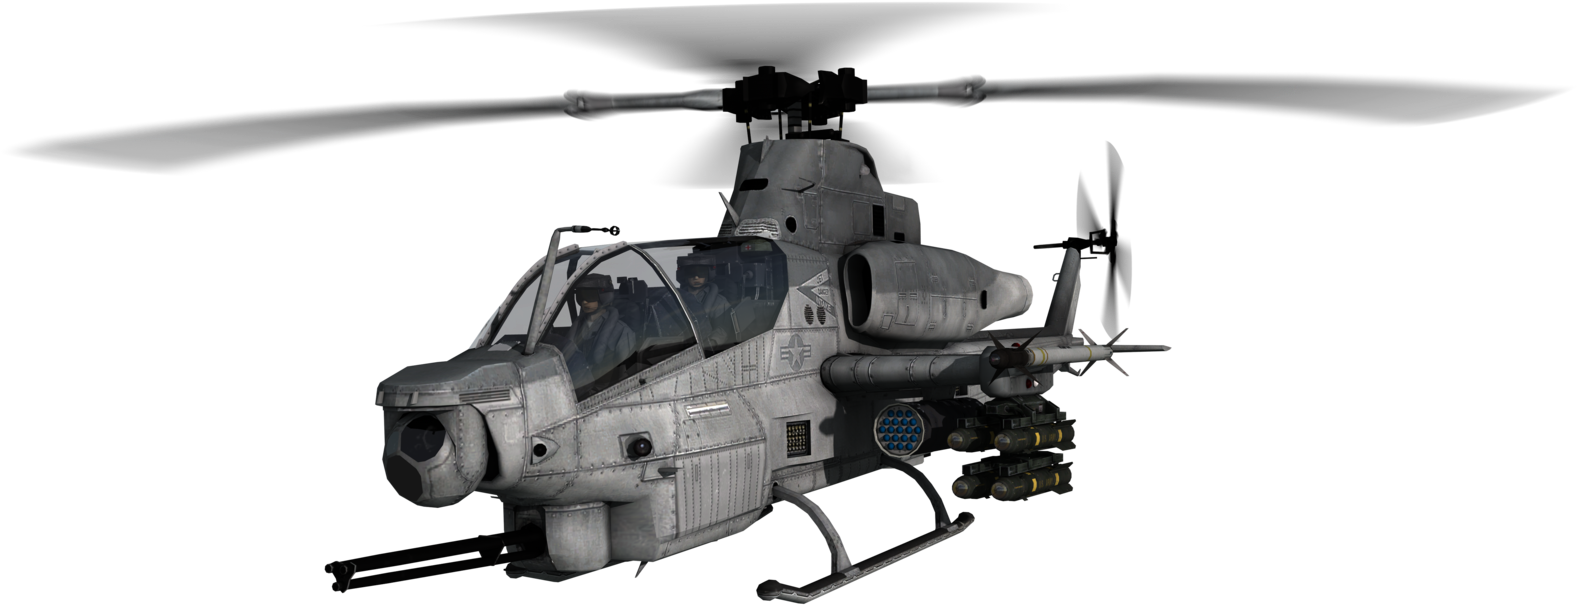 Apache transparent . Helicopter clipart minecraft